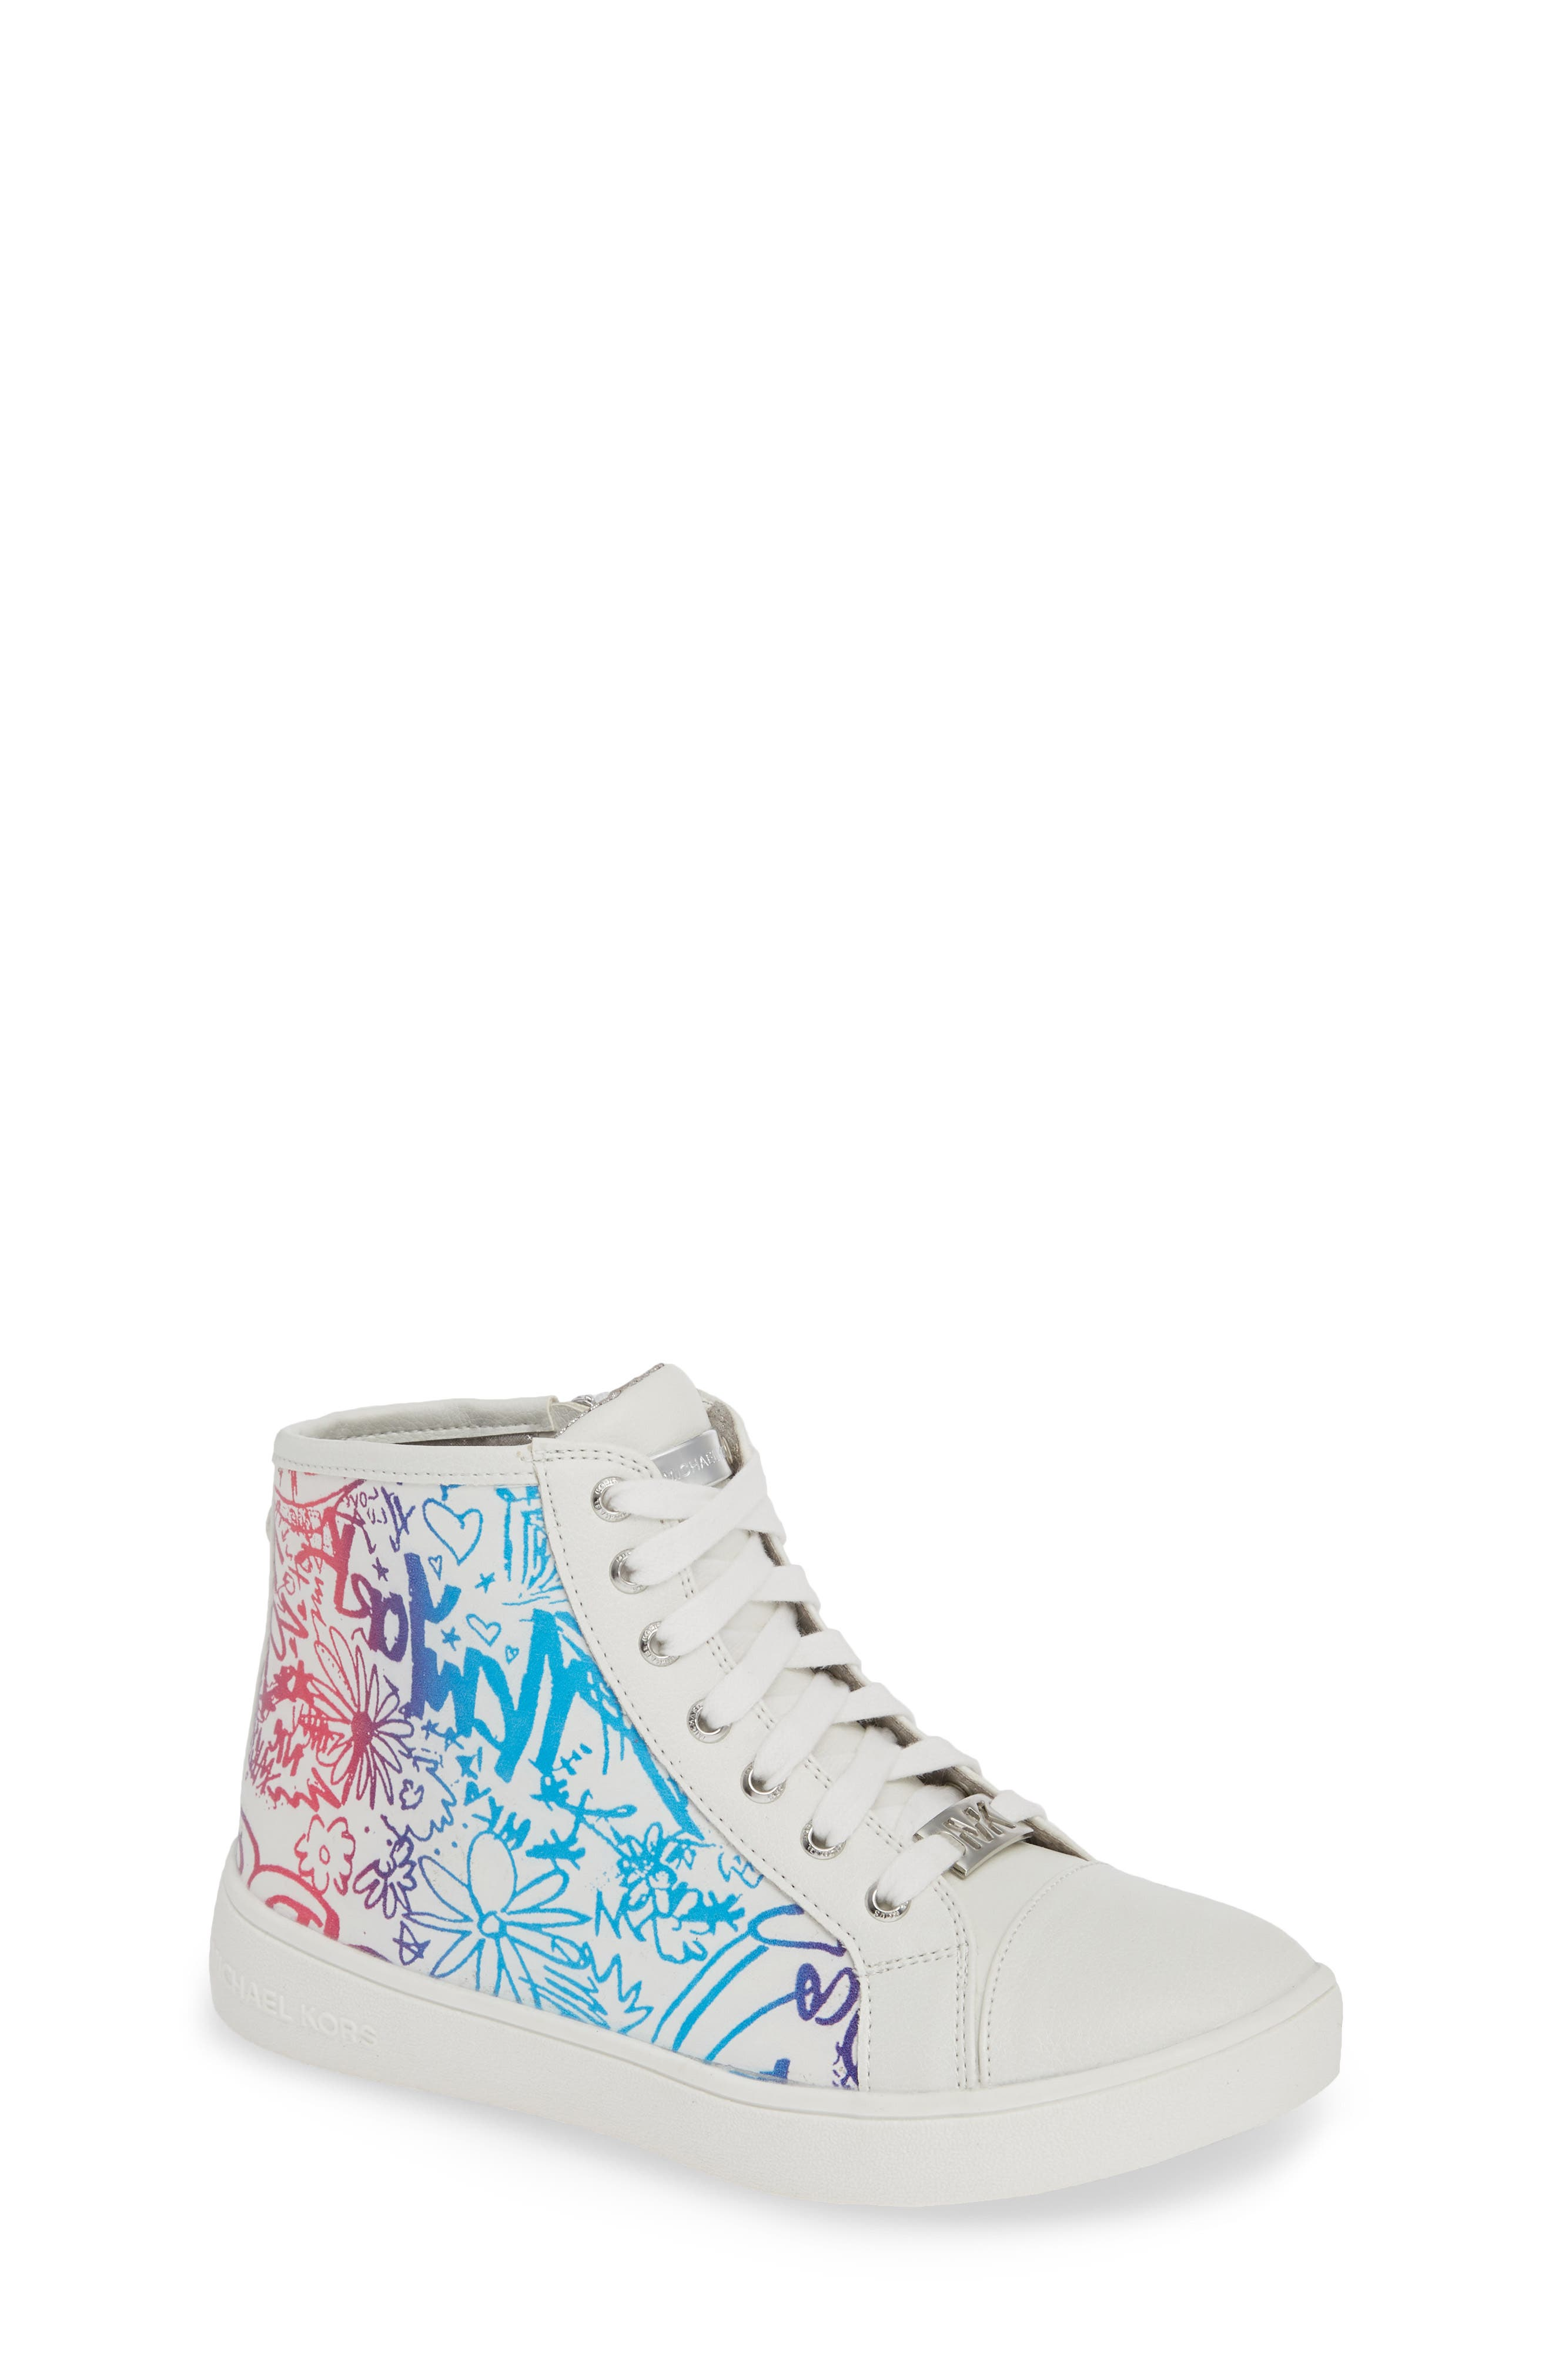 Ivy Spectra High Top Sneaker,                         Main,                         color, WHITE MULTI